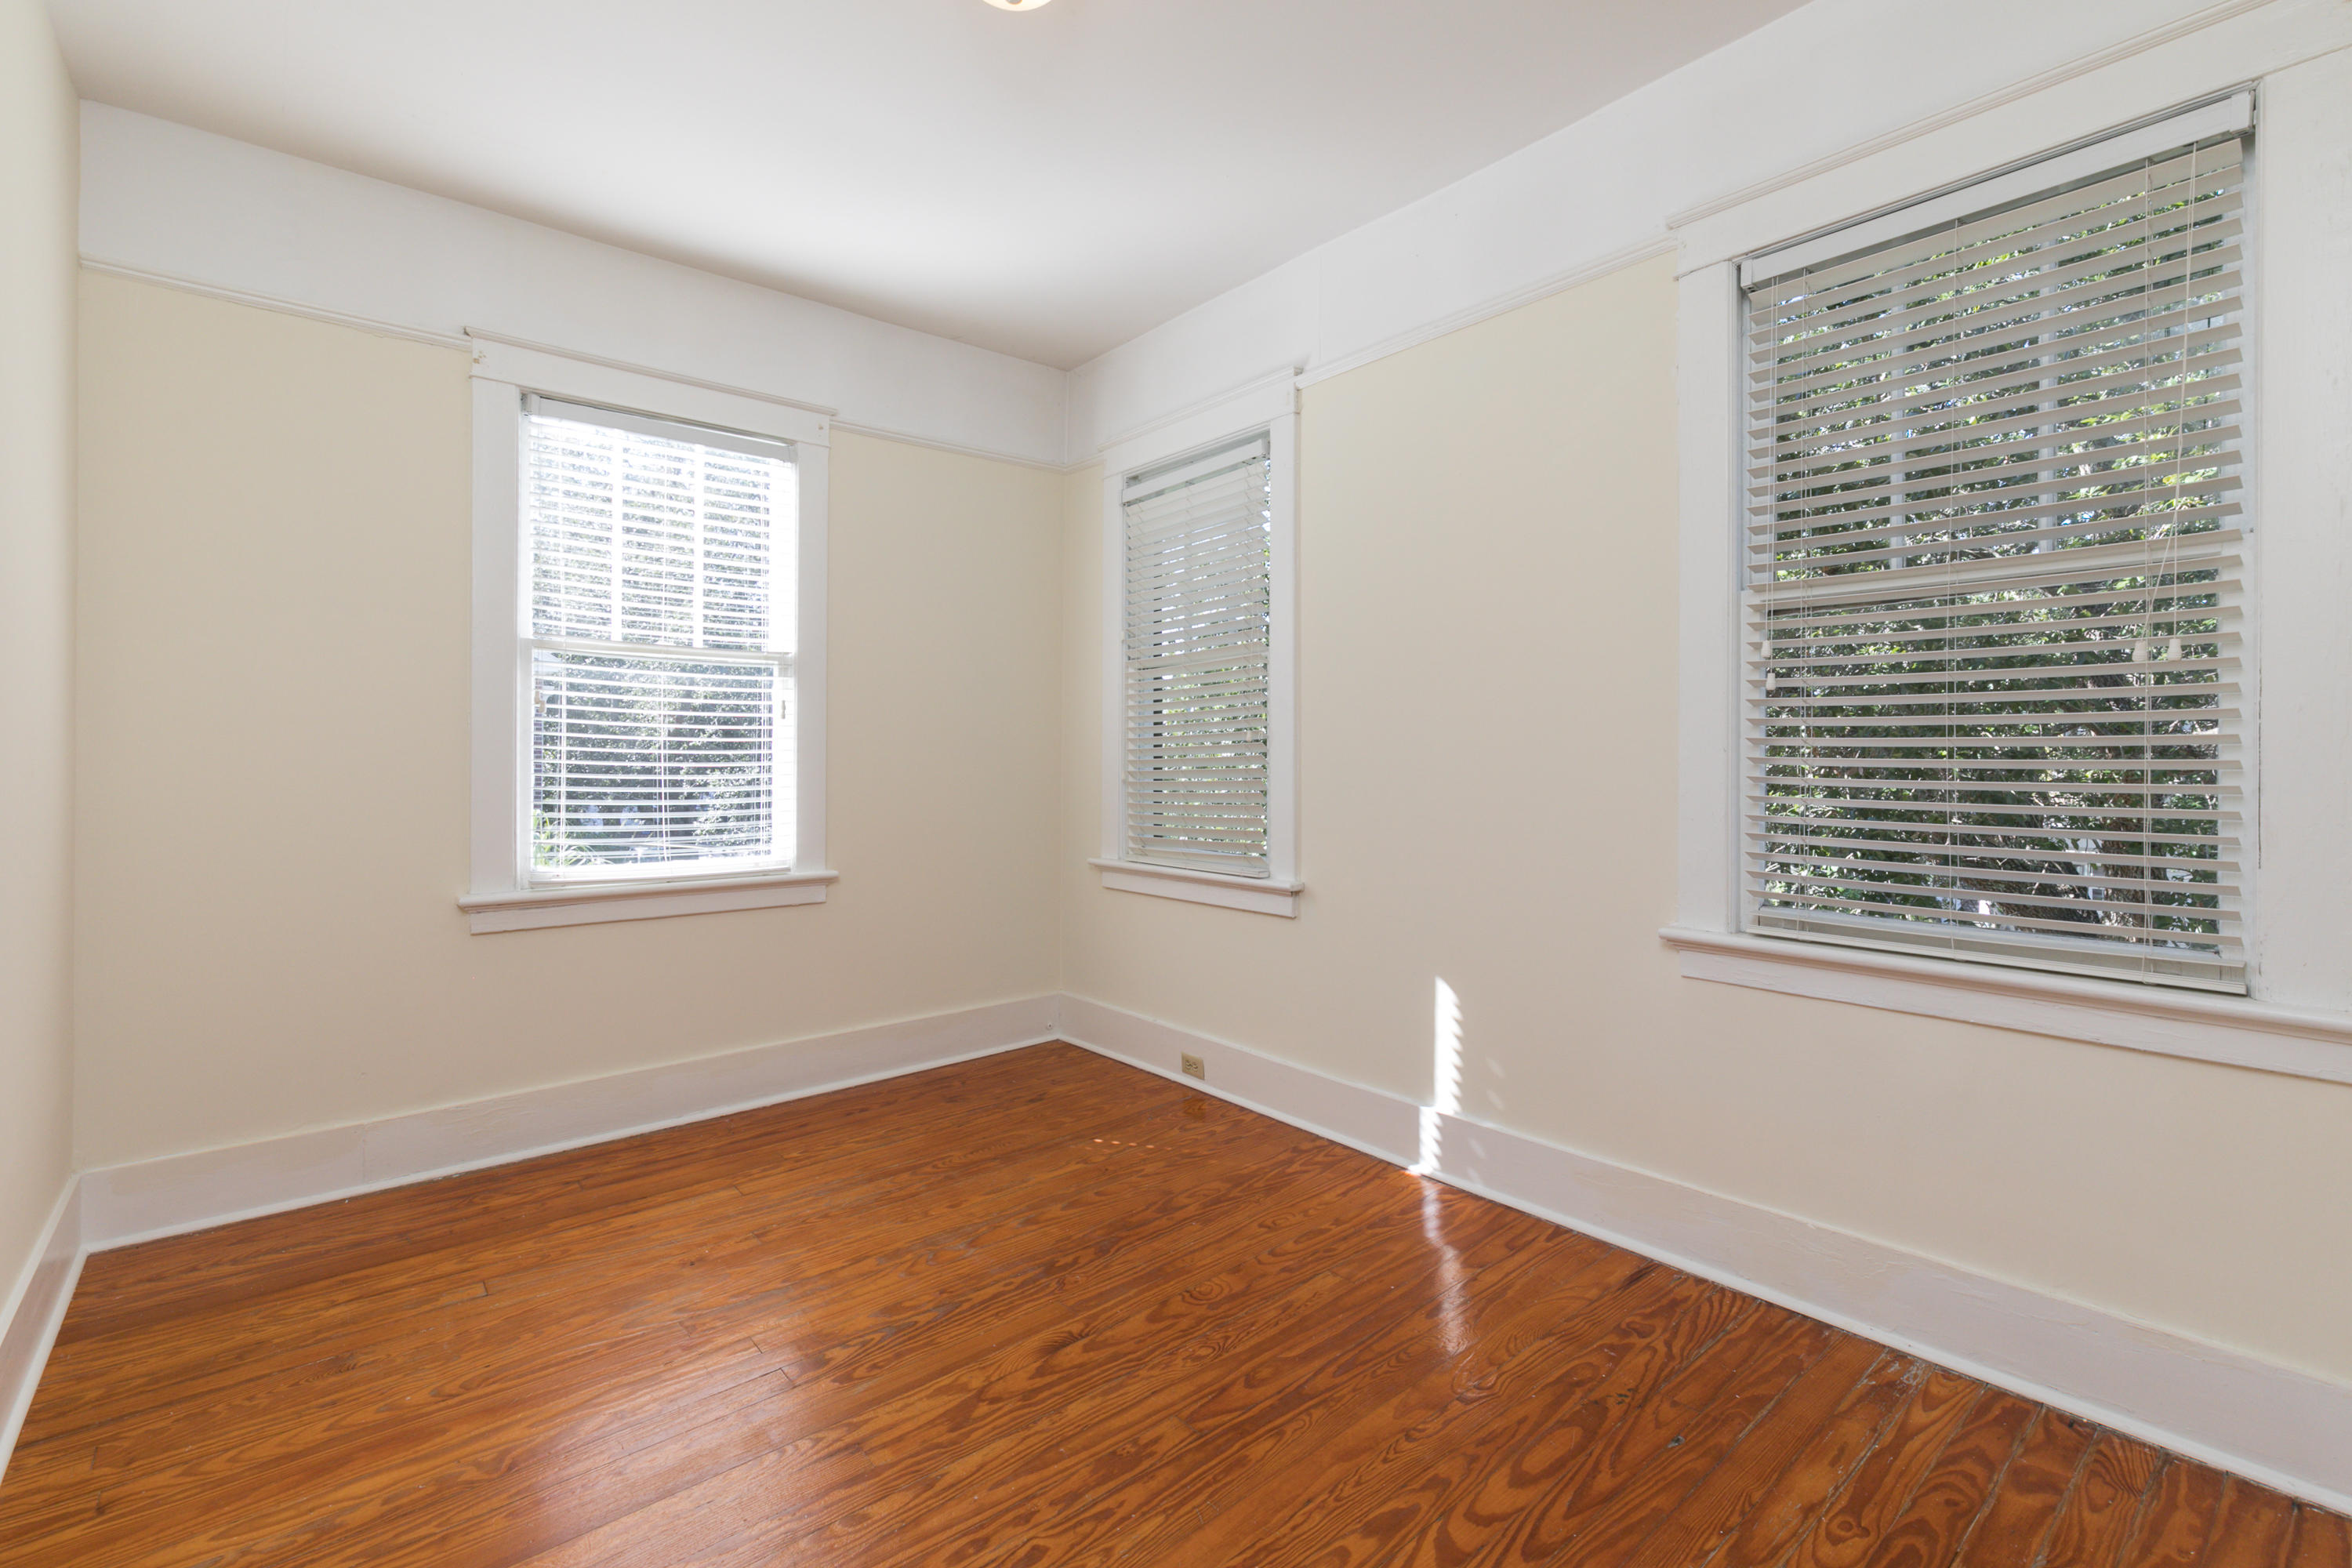 South of Broad Homes For Sale - 22 Council, Charleston, SC - 17